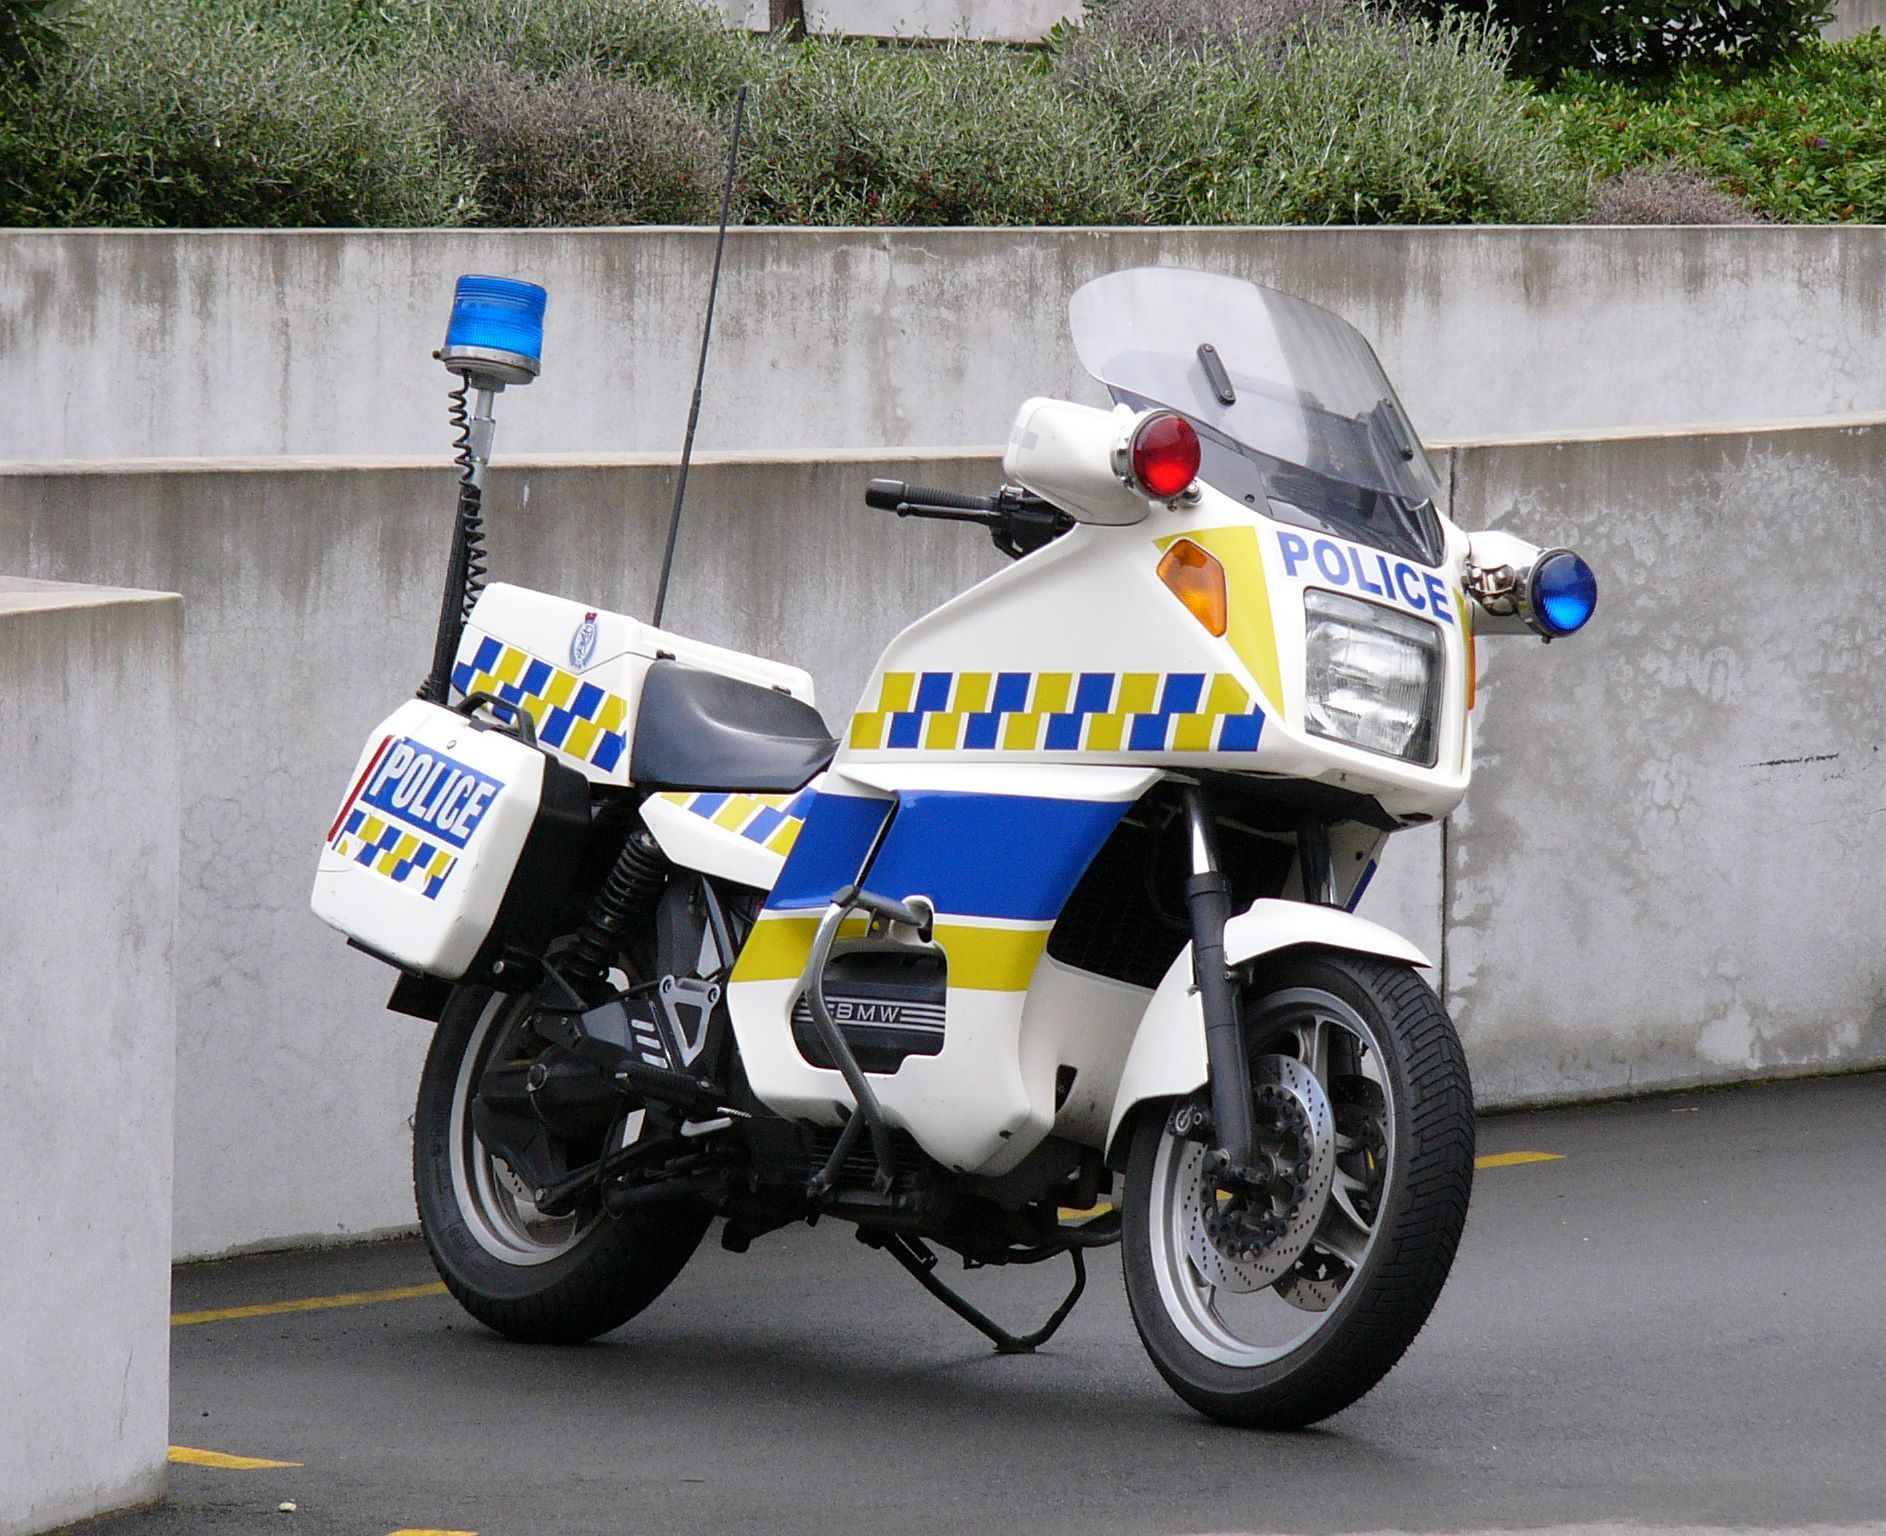 bmw nz new zealand police motorcycle police motorcycle bmw